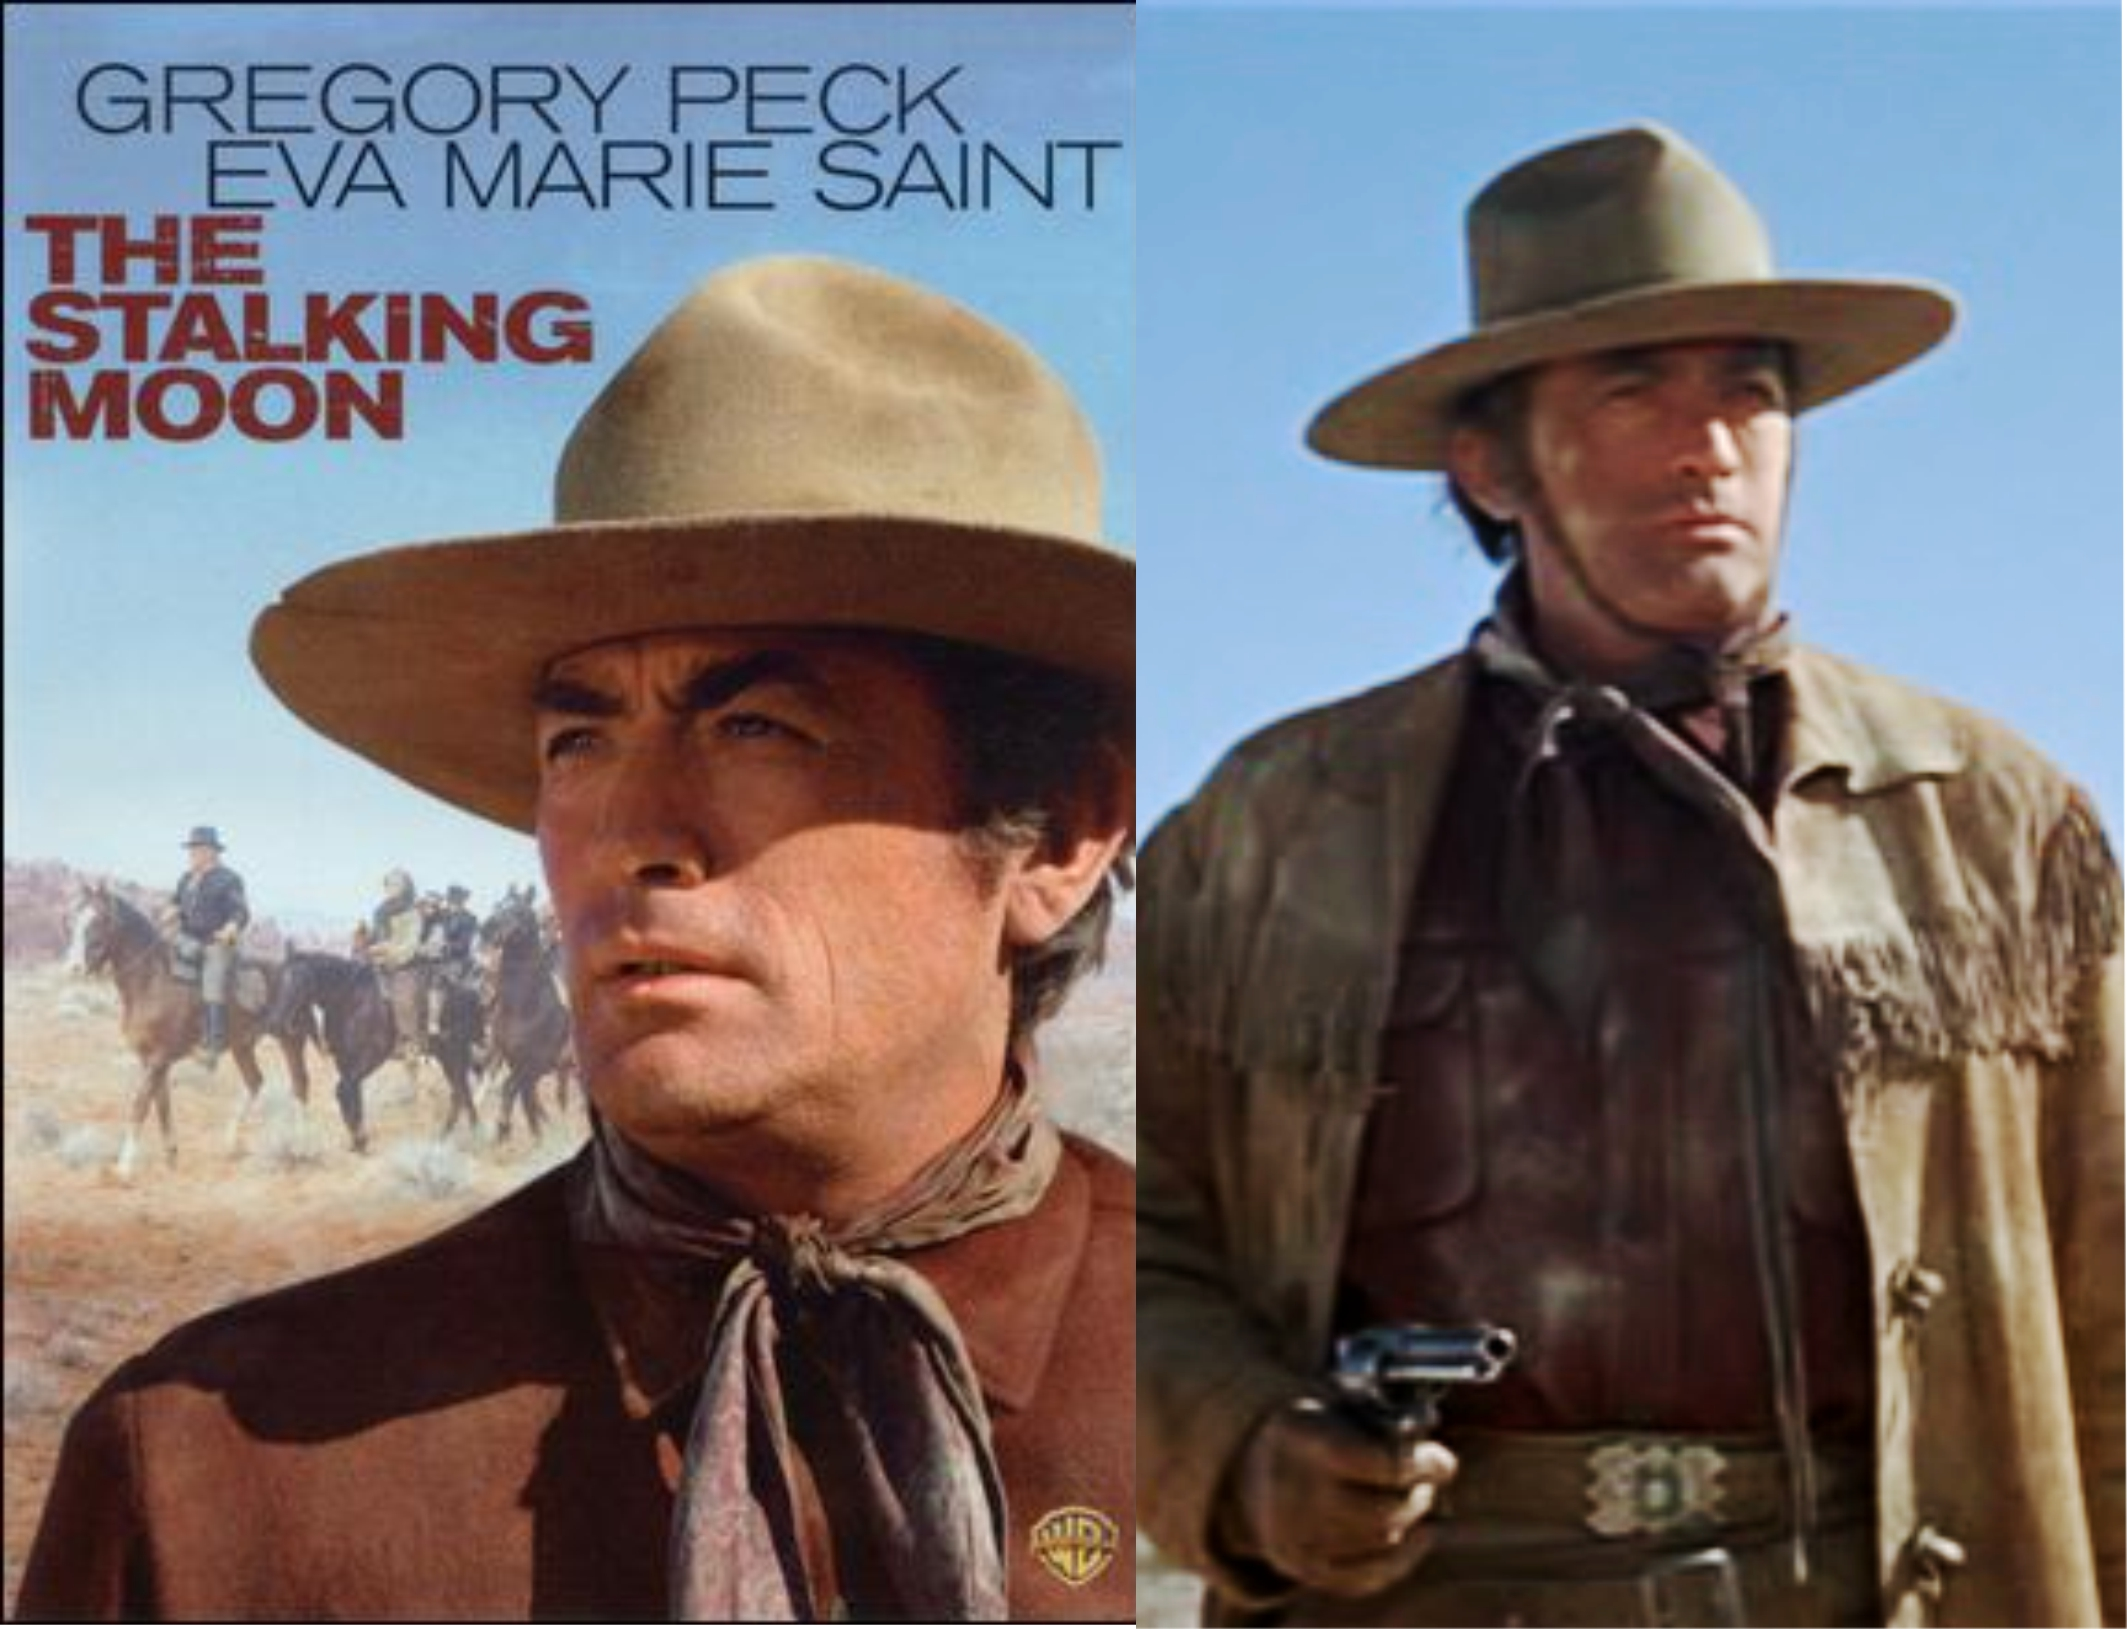 gregory peck westerns filmography part 2 my favorite